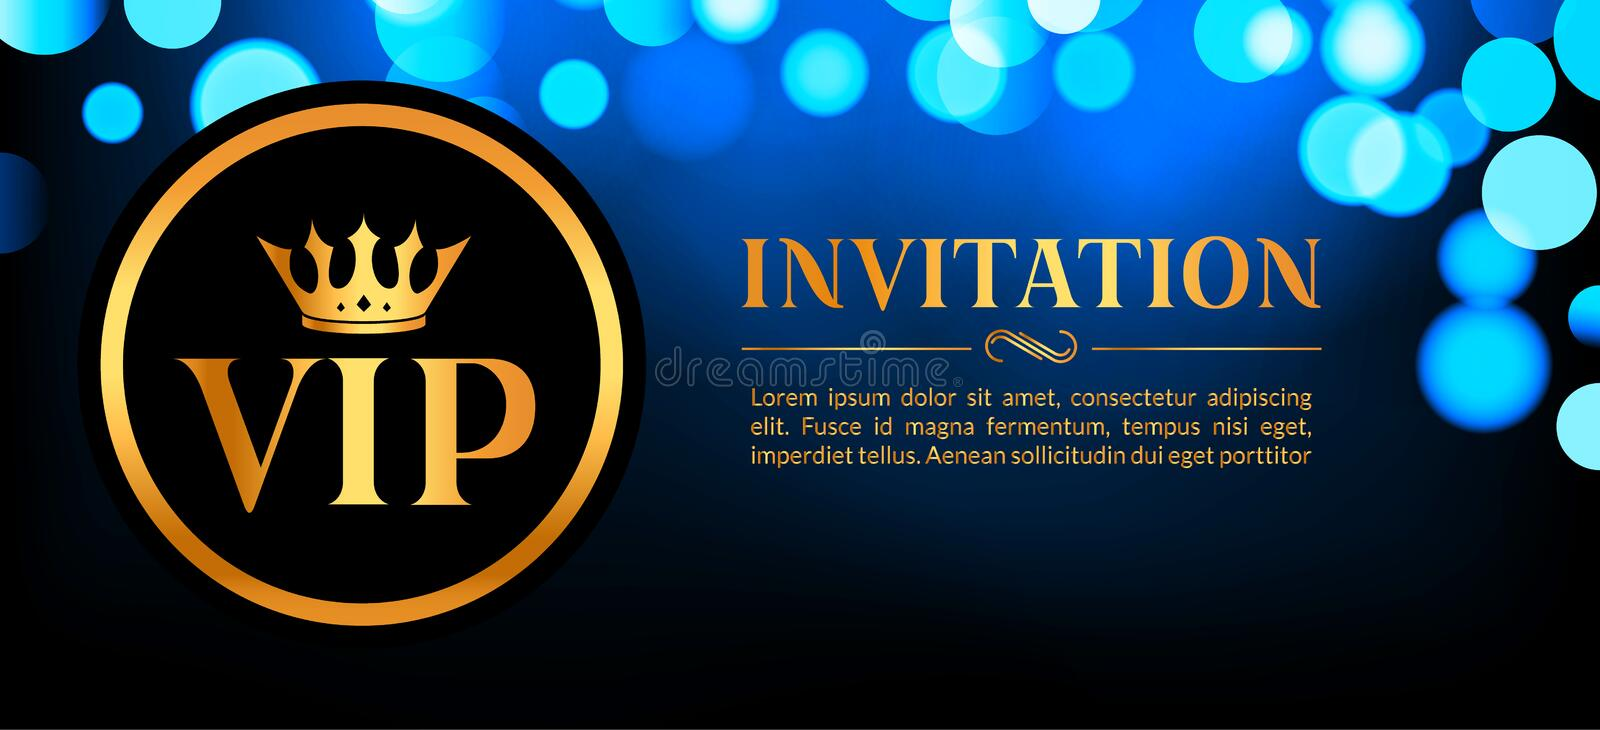 VIP invitation card with gold and bokeh glowing background. Premium luxury elegant design vector illustration